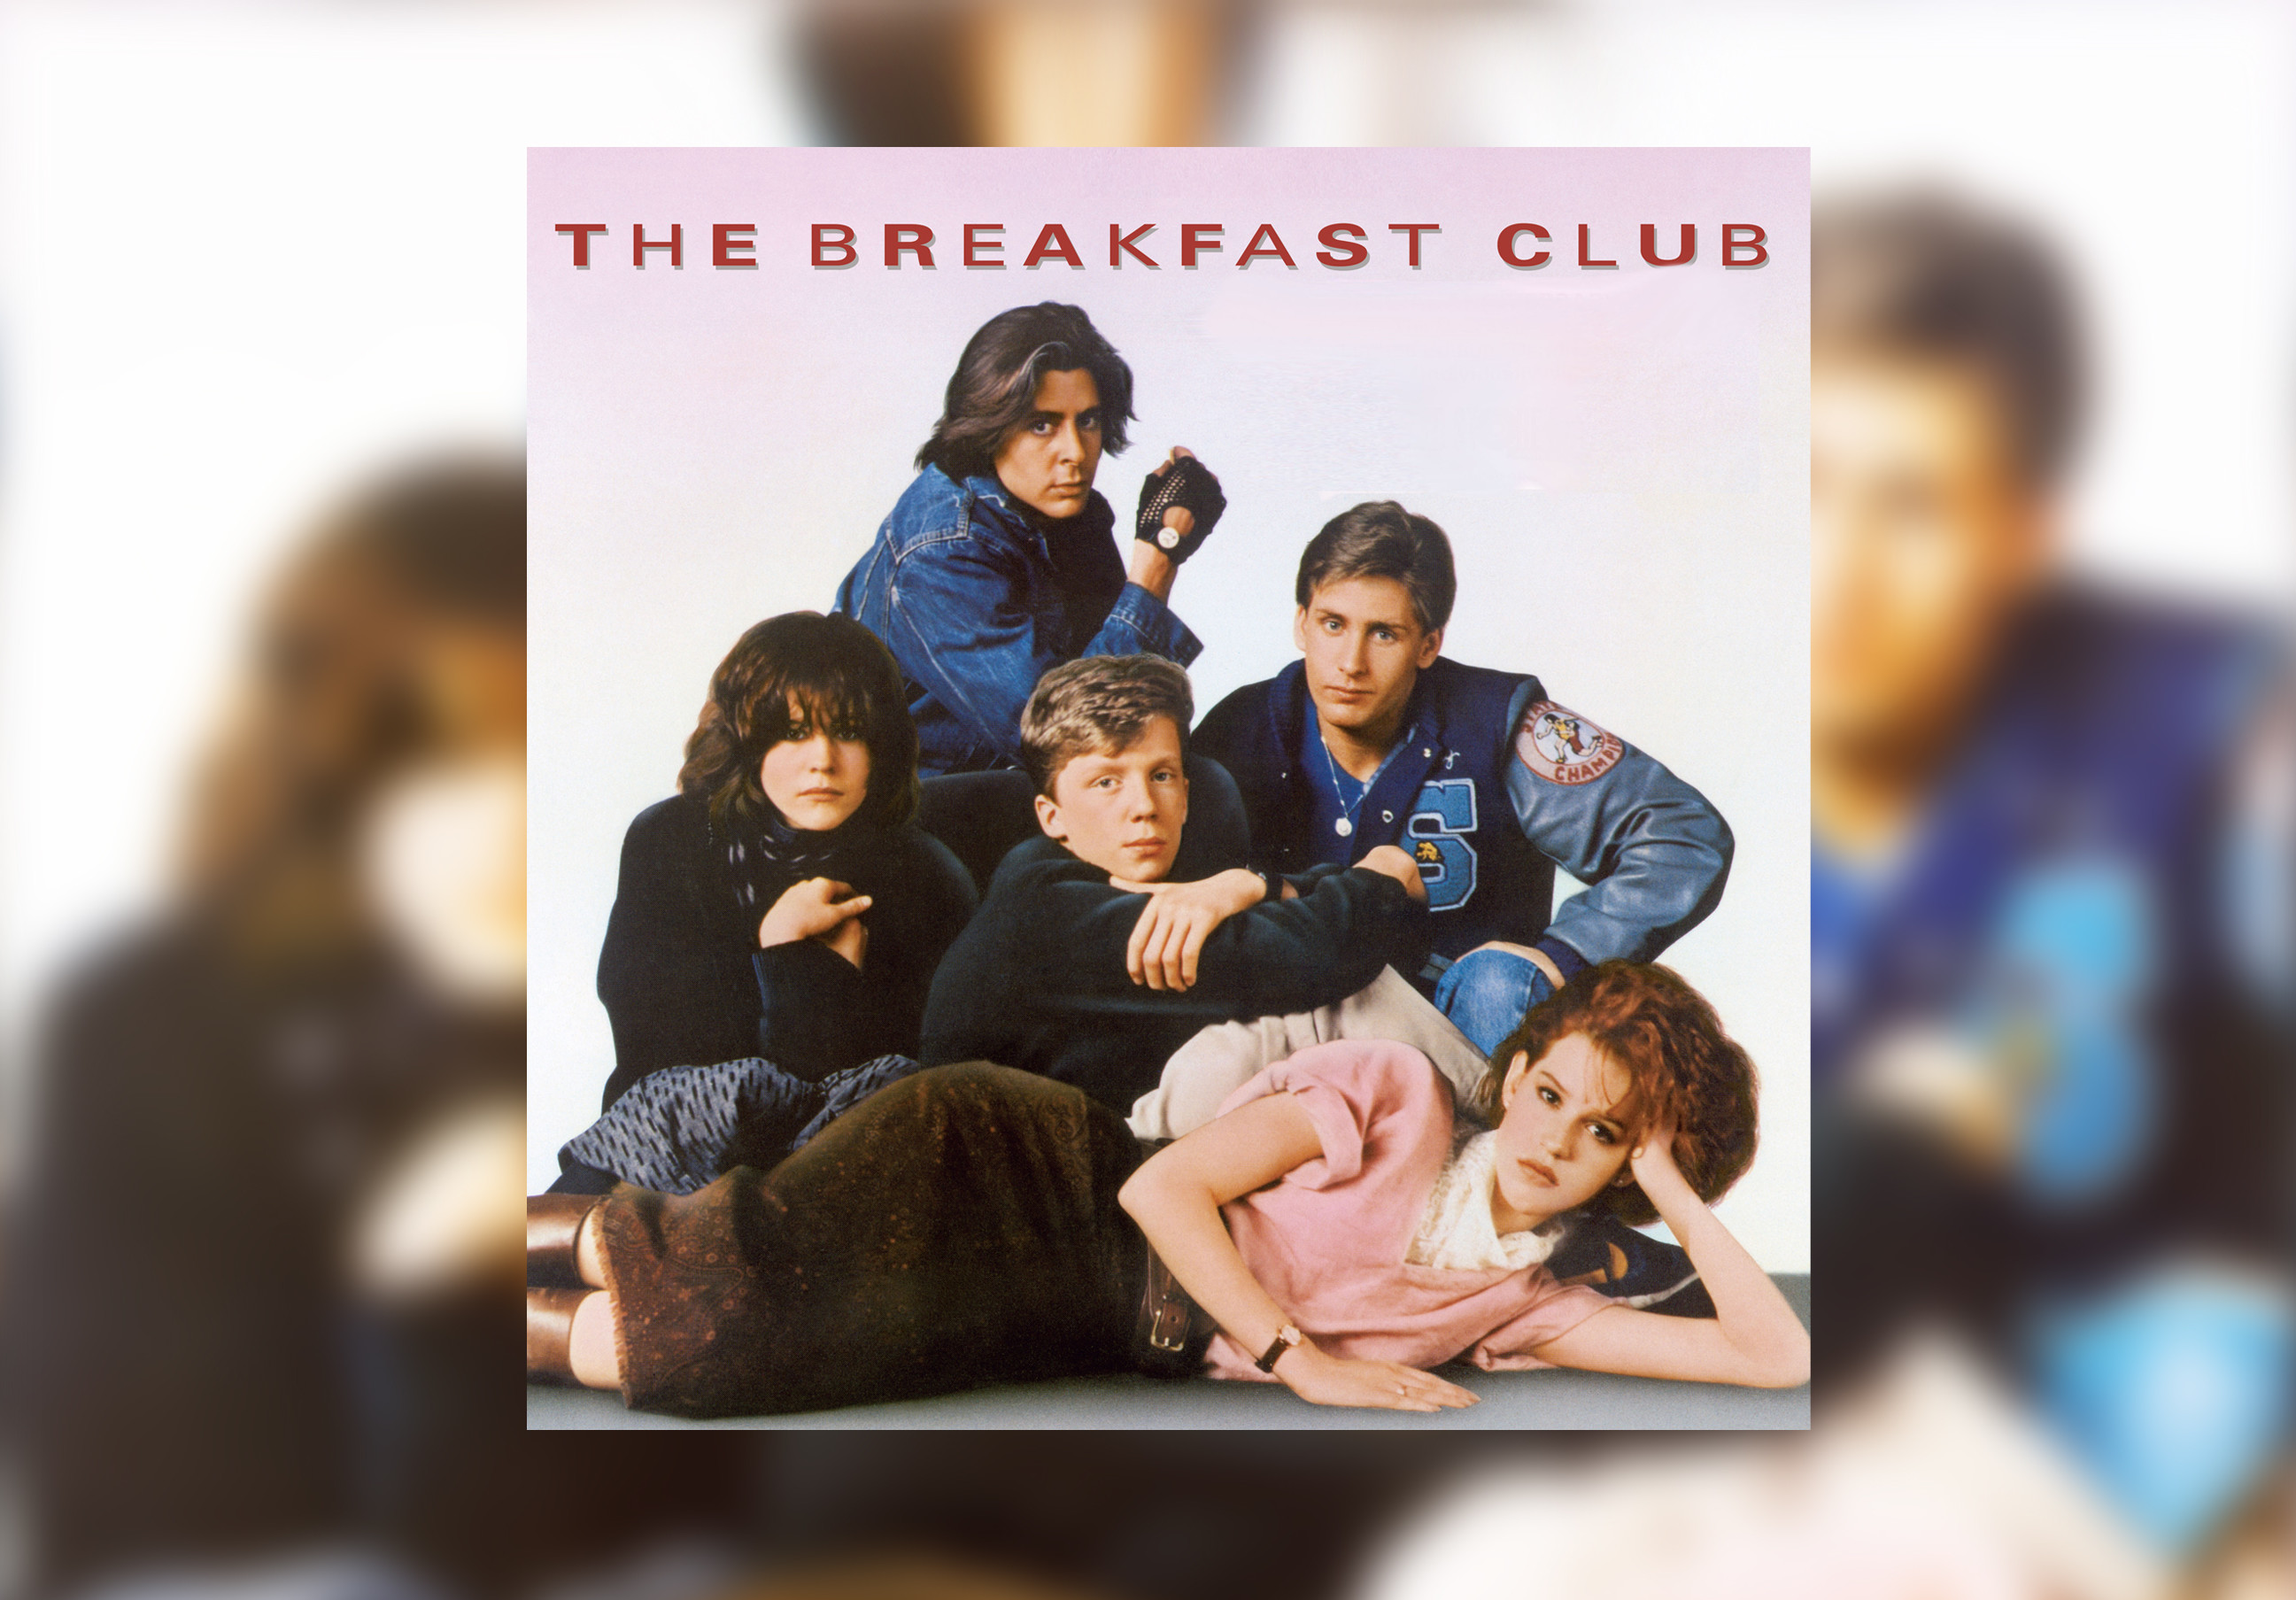 The Breakfast Club: dimmi come fai colazione e ti dirò chi sei